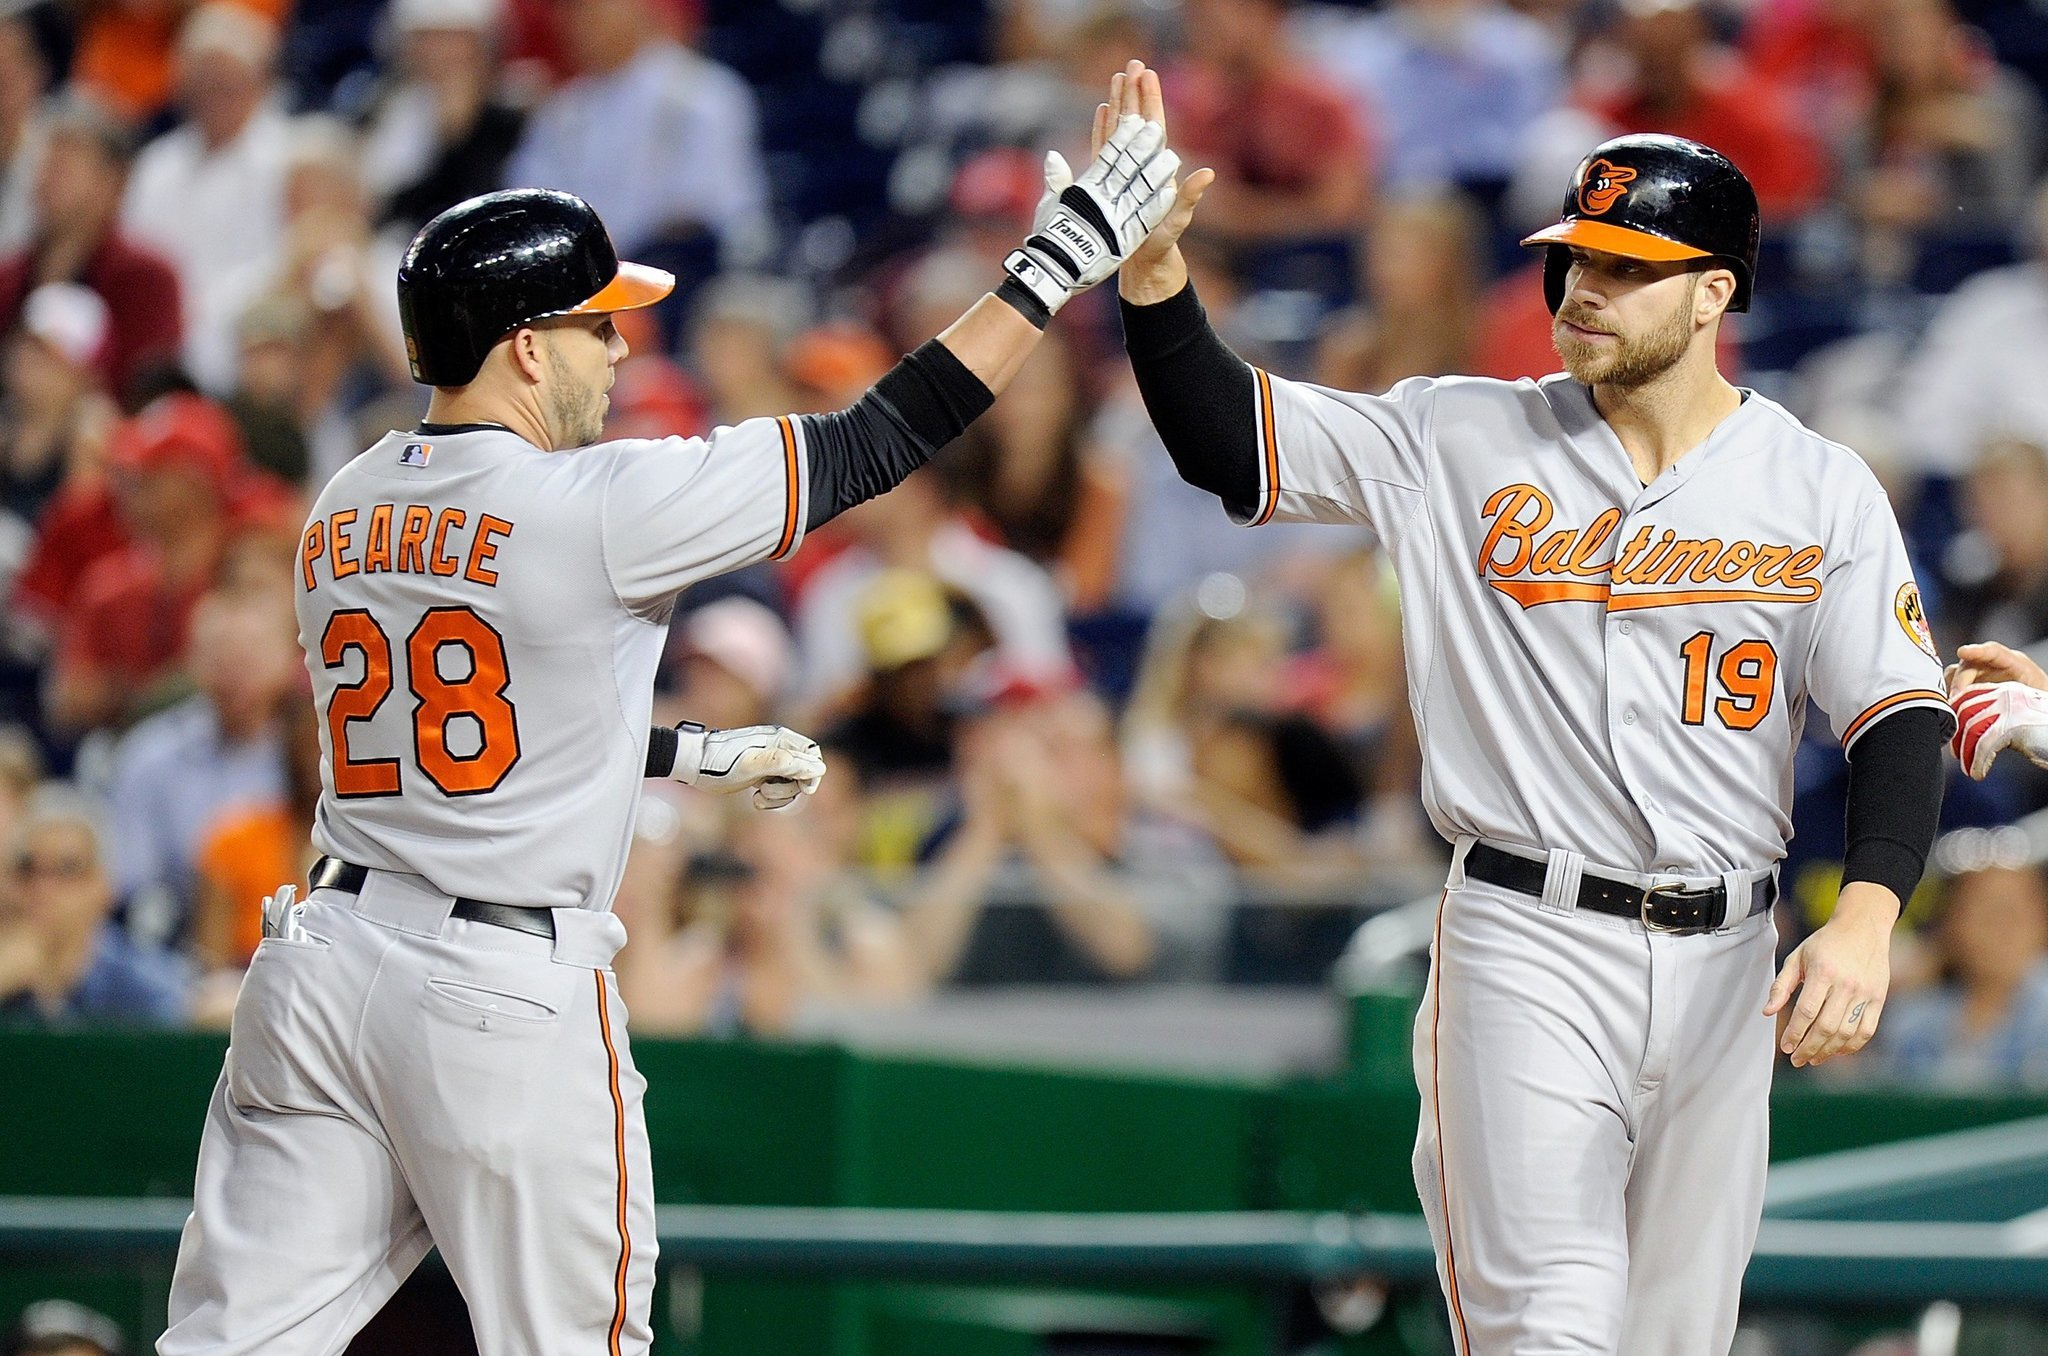 Bal-orioles-shuffle-defense-with-chris-davis-in-right-field-returning-steve-pearce-at-first-base-20160816